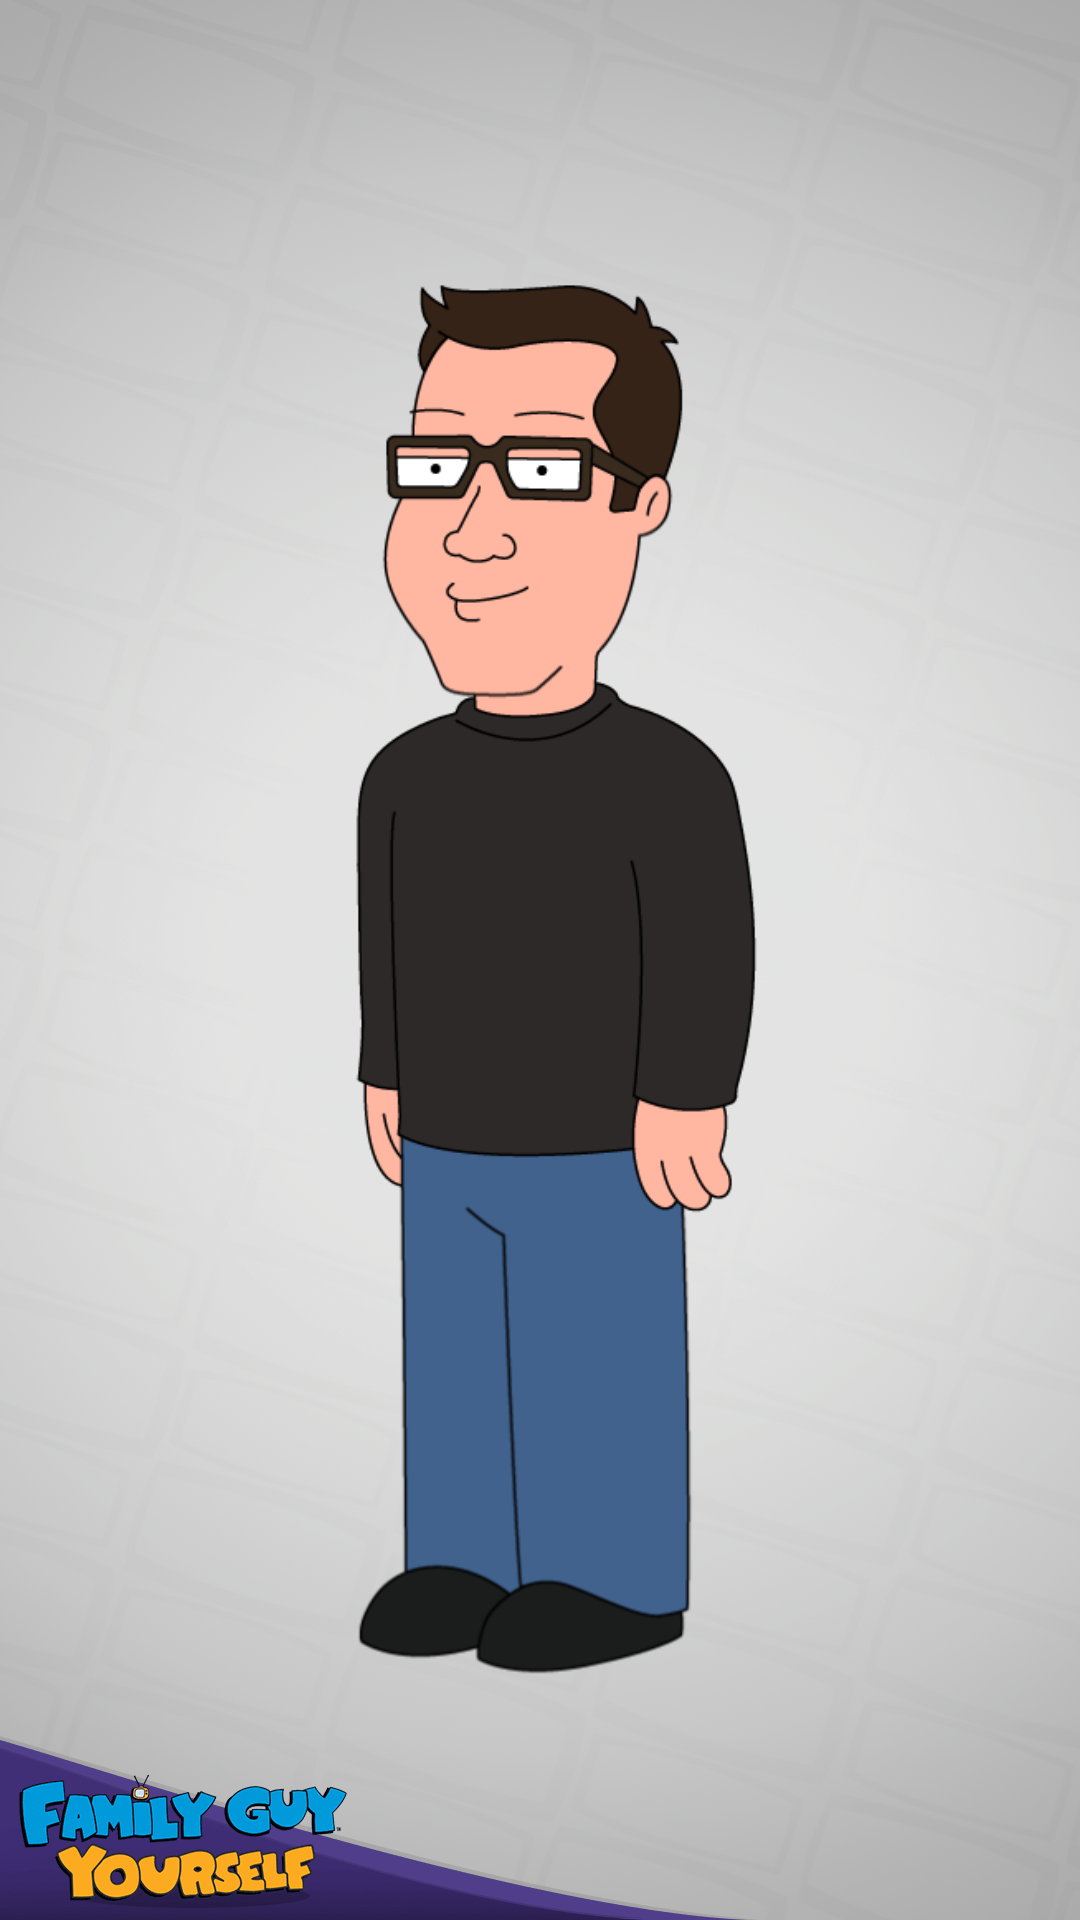 familyguy (2).png